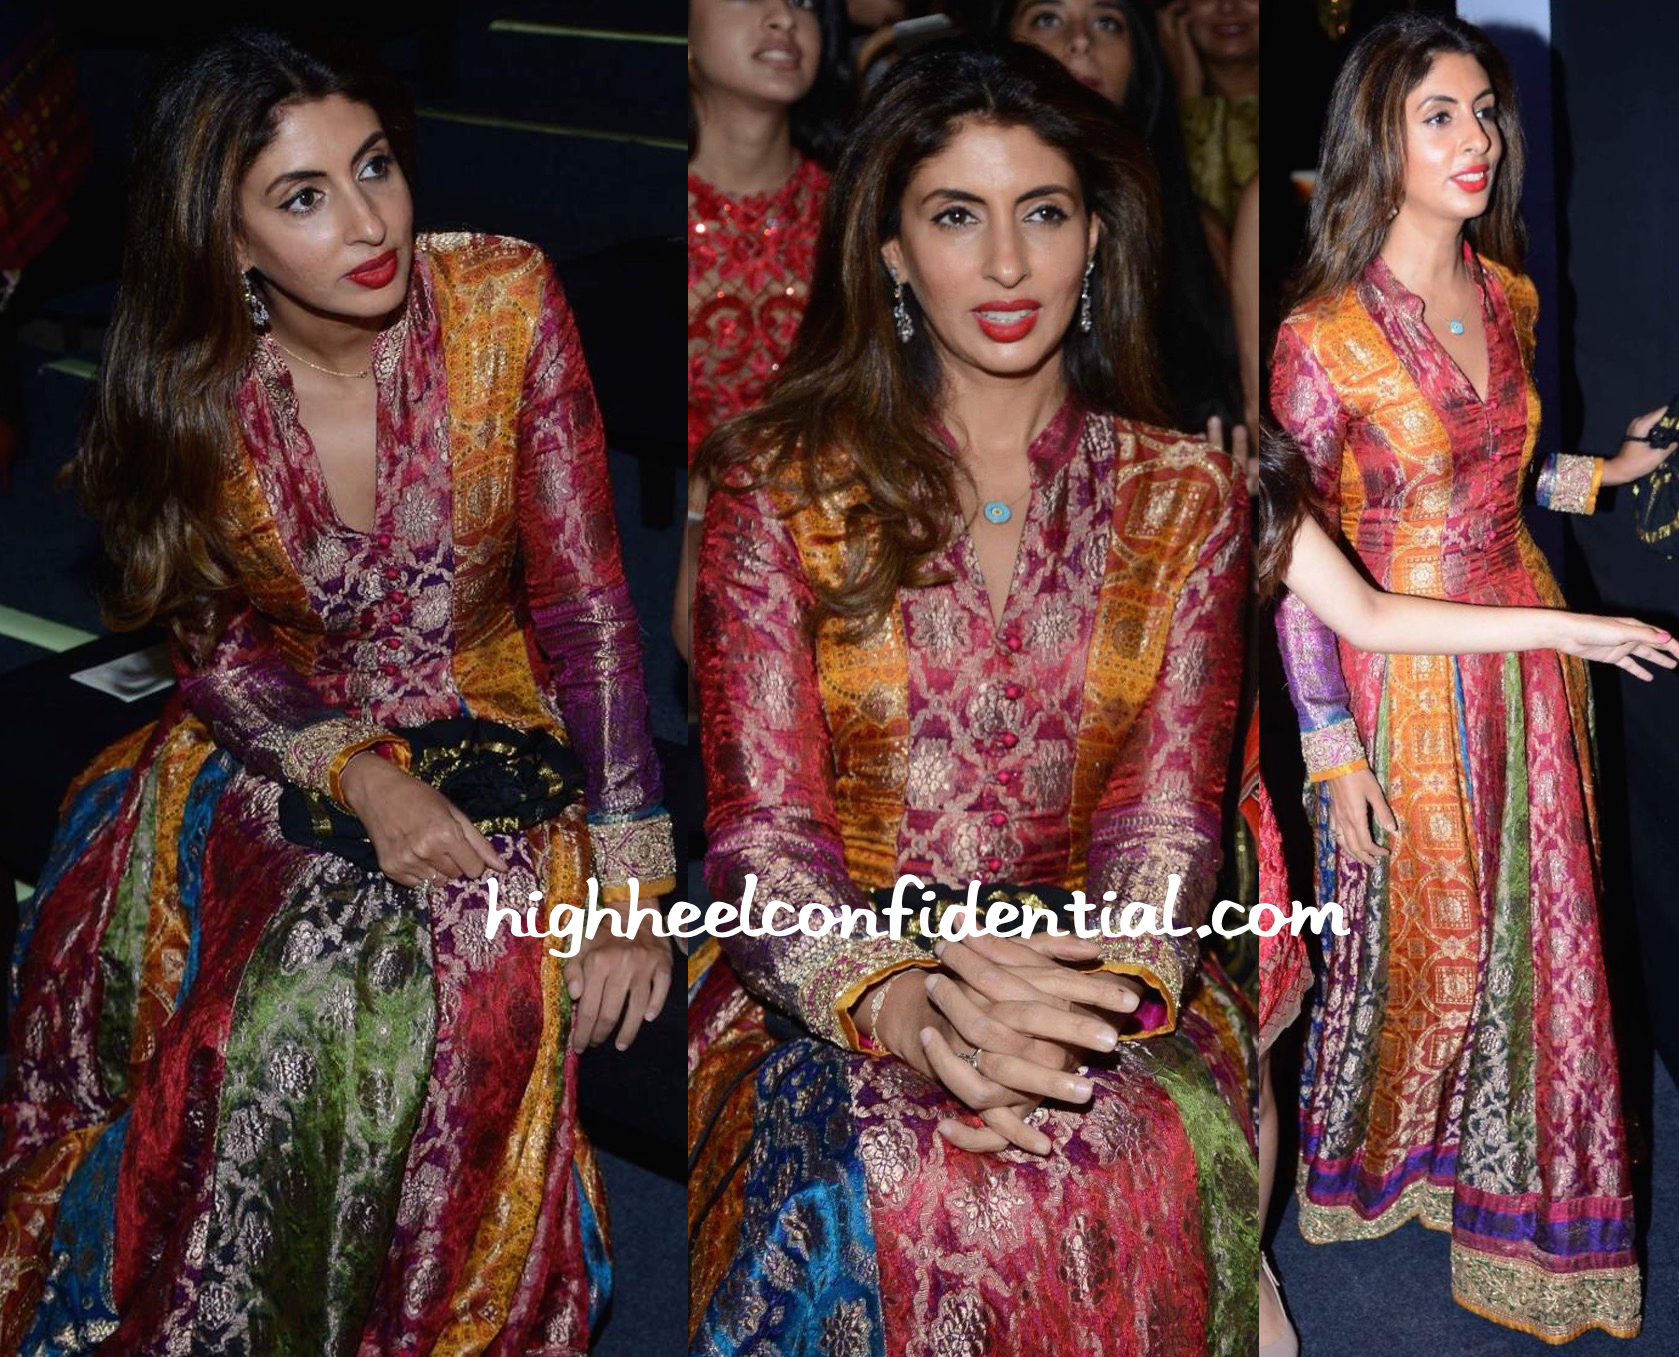 Shweta Bachchan Nanda Wears Abu Jani Sandeep Khosla To The Designer Duo S Show At India Bridal Fashion Week 2015 1 High Heel Confidential